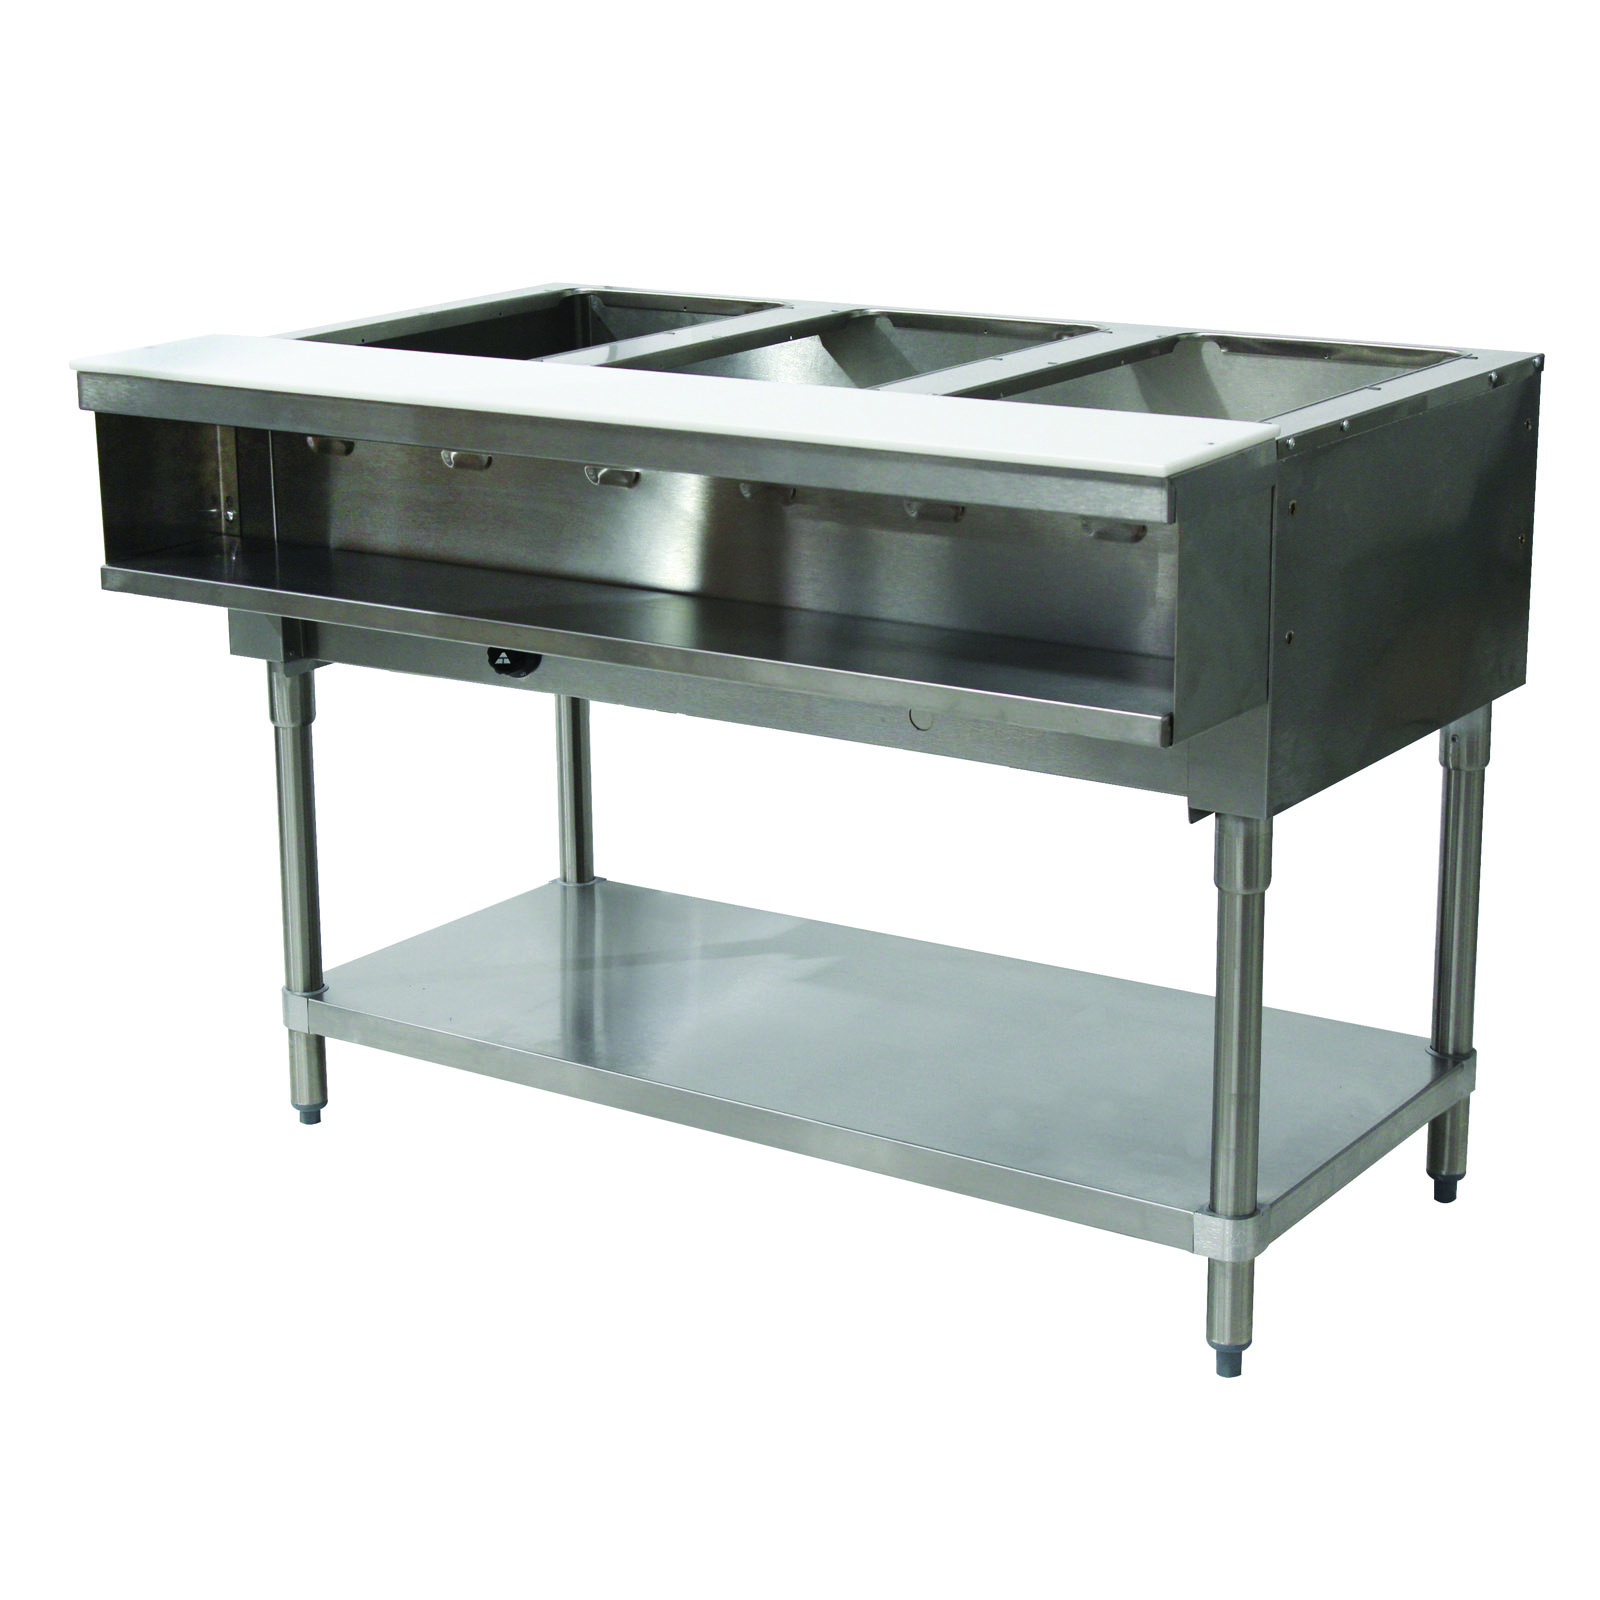 Advance Tabco WB-3G-LP serving counter, hot food, gas